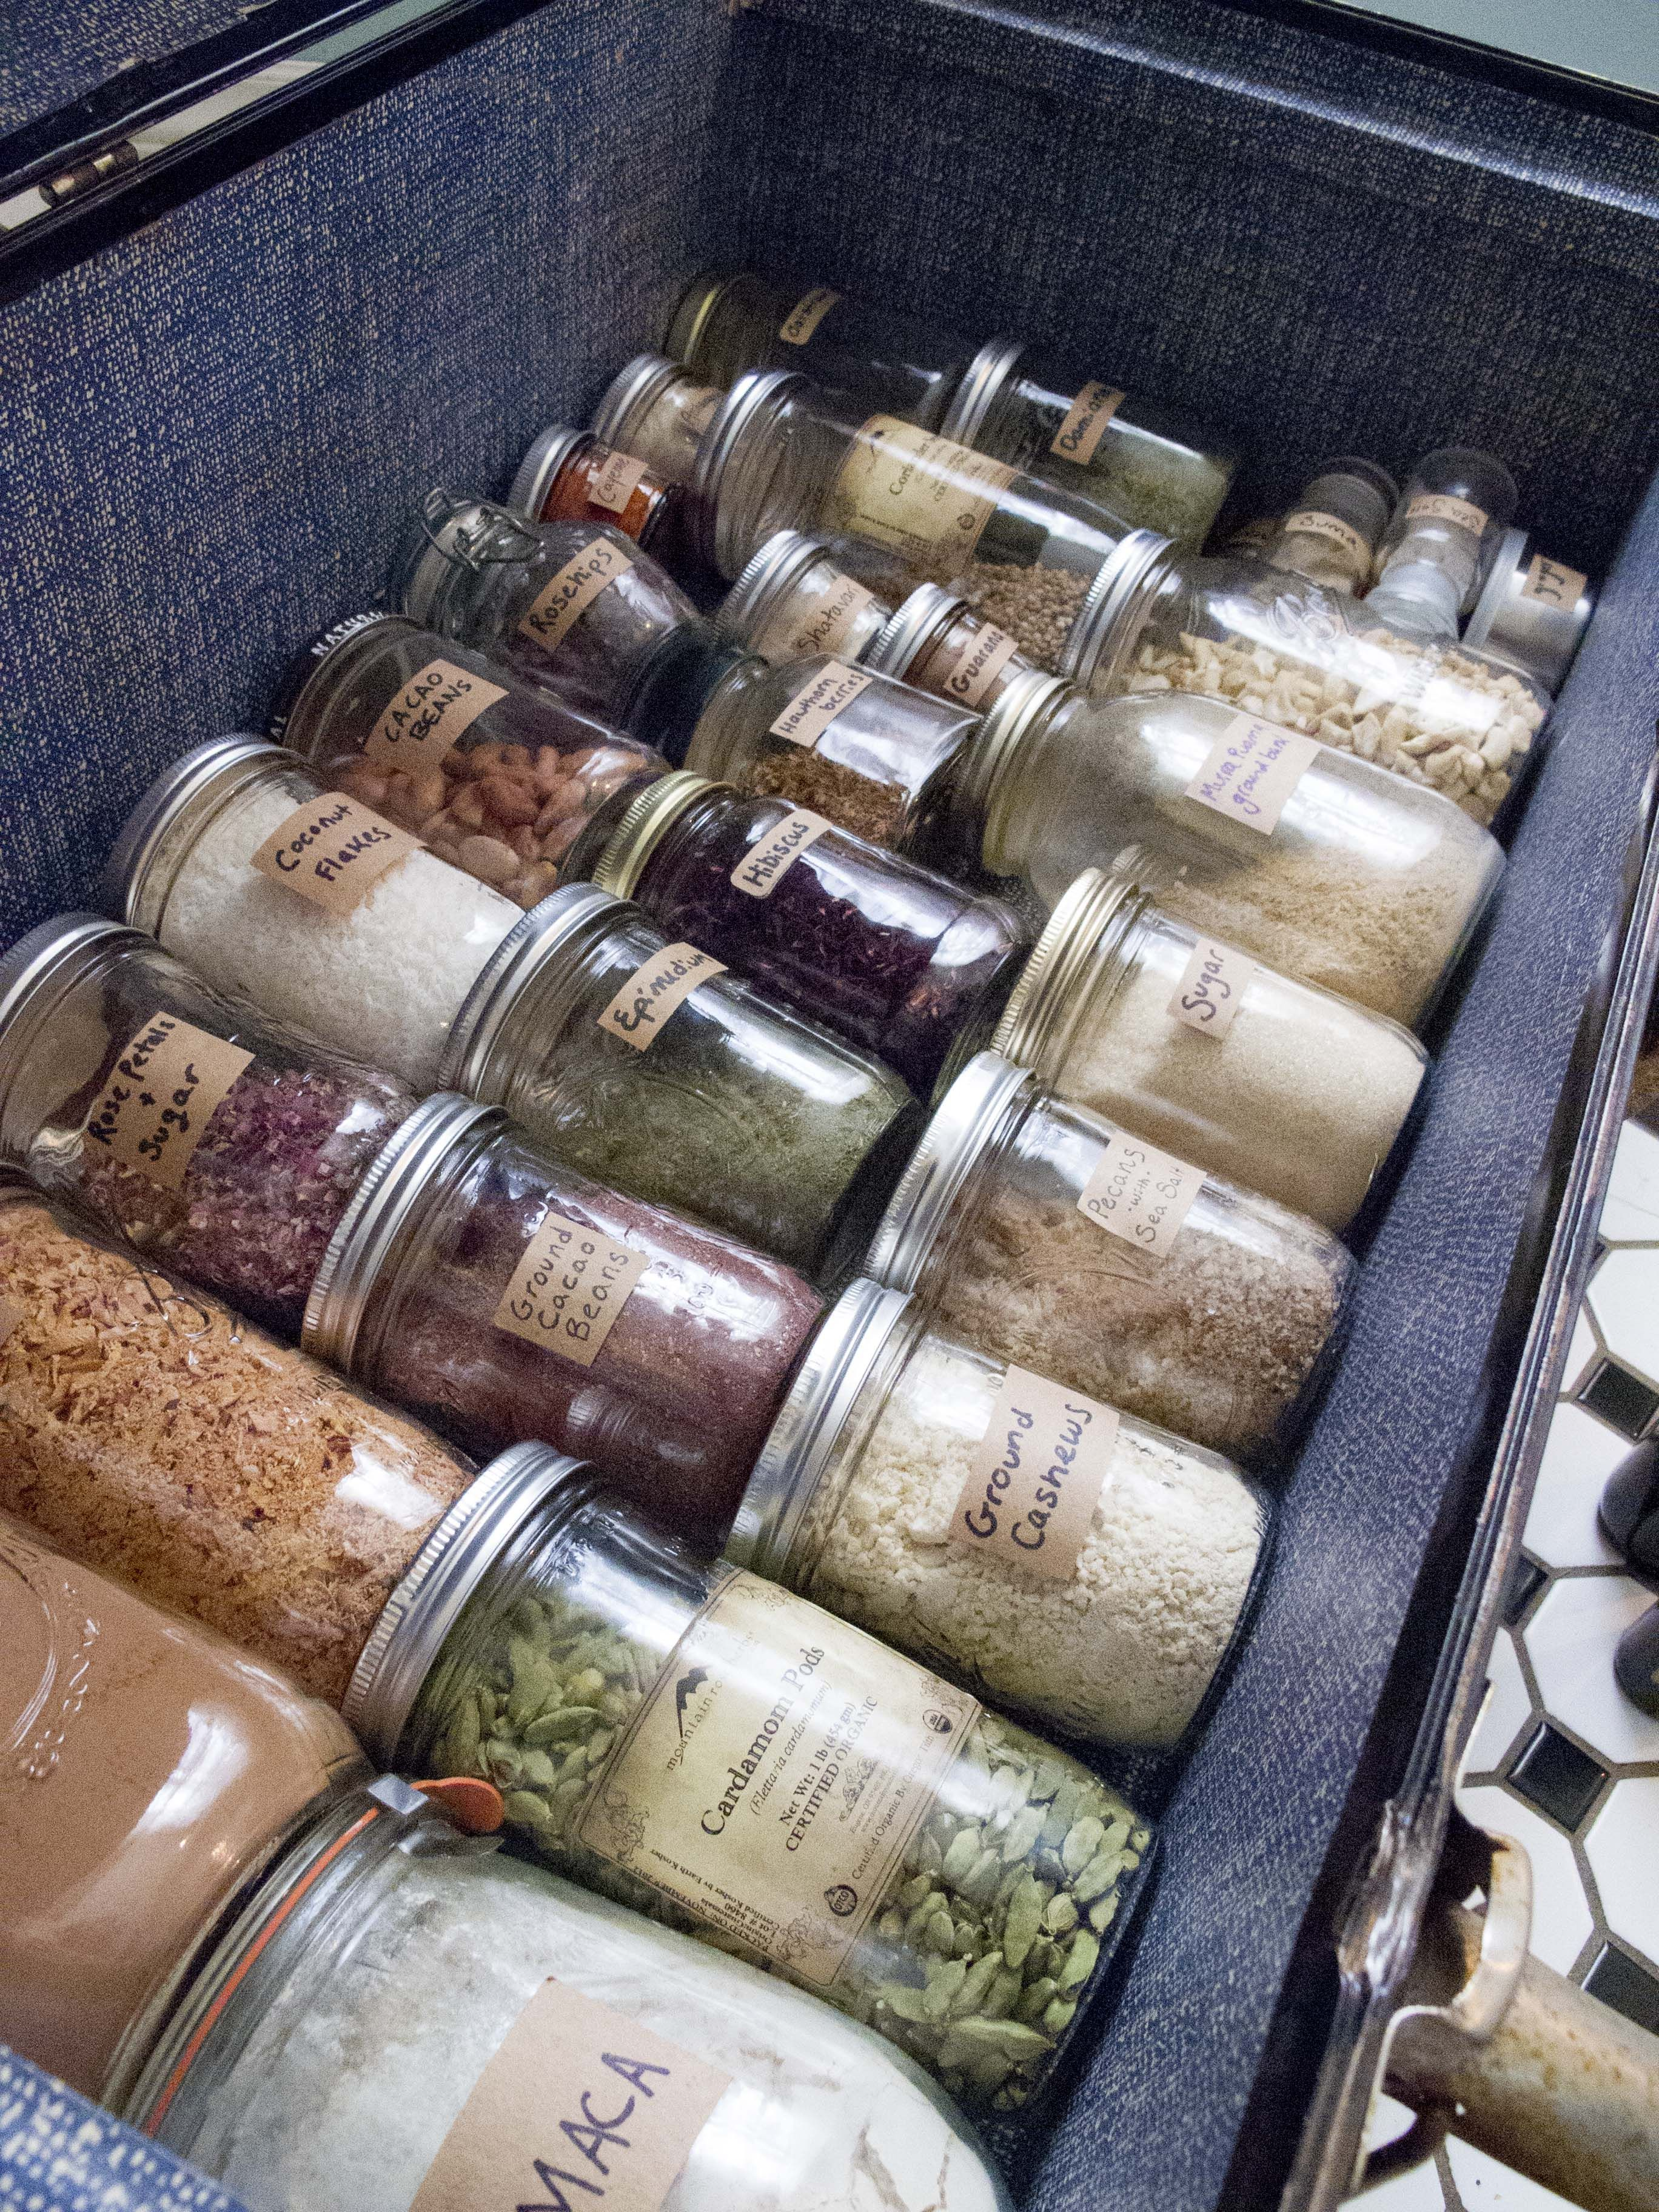 How to Make Herbal Love Potions: Infused Honeys, Elixirs ...